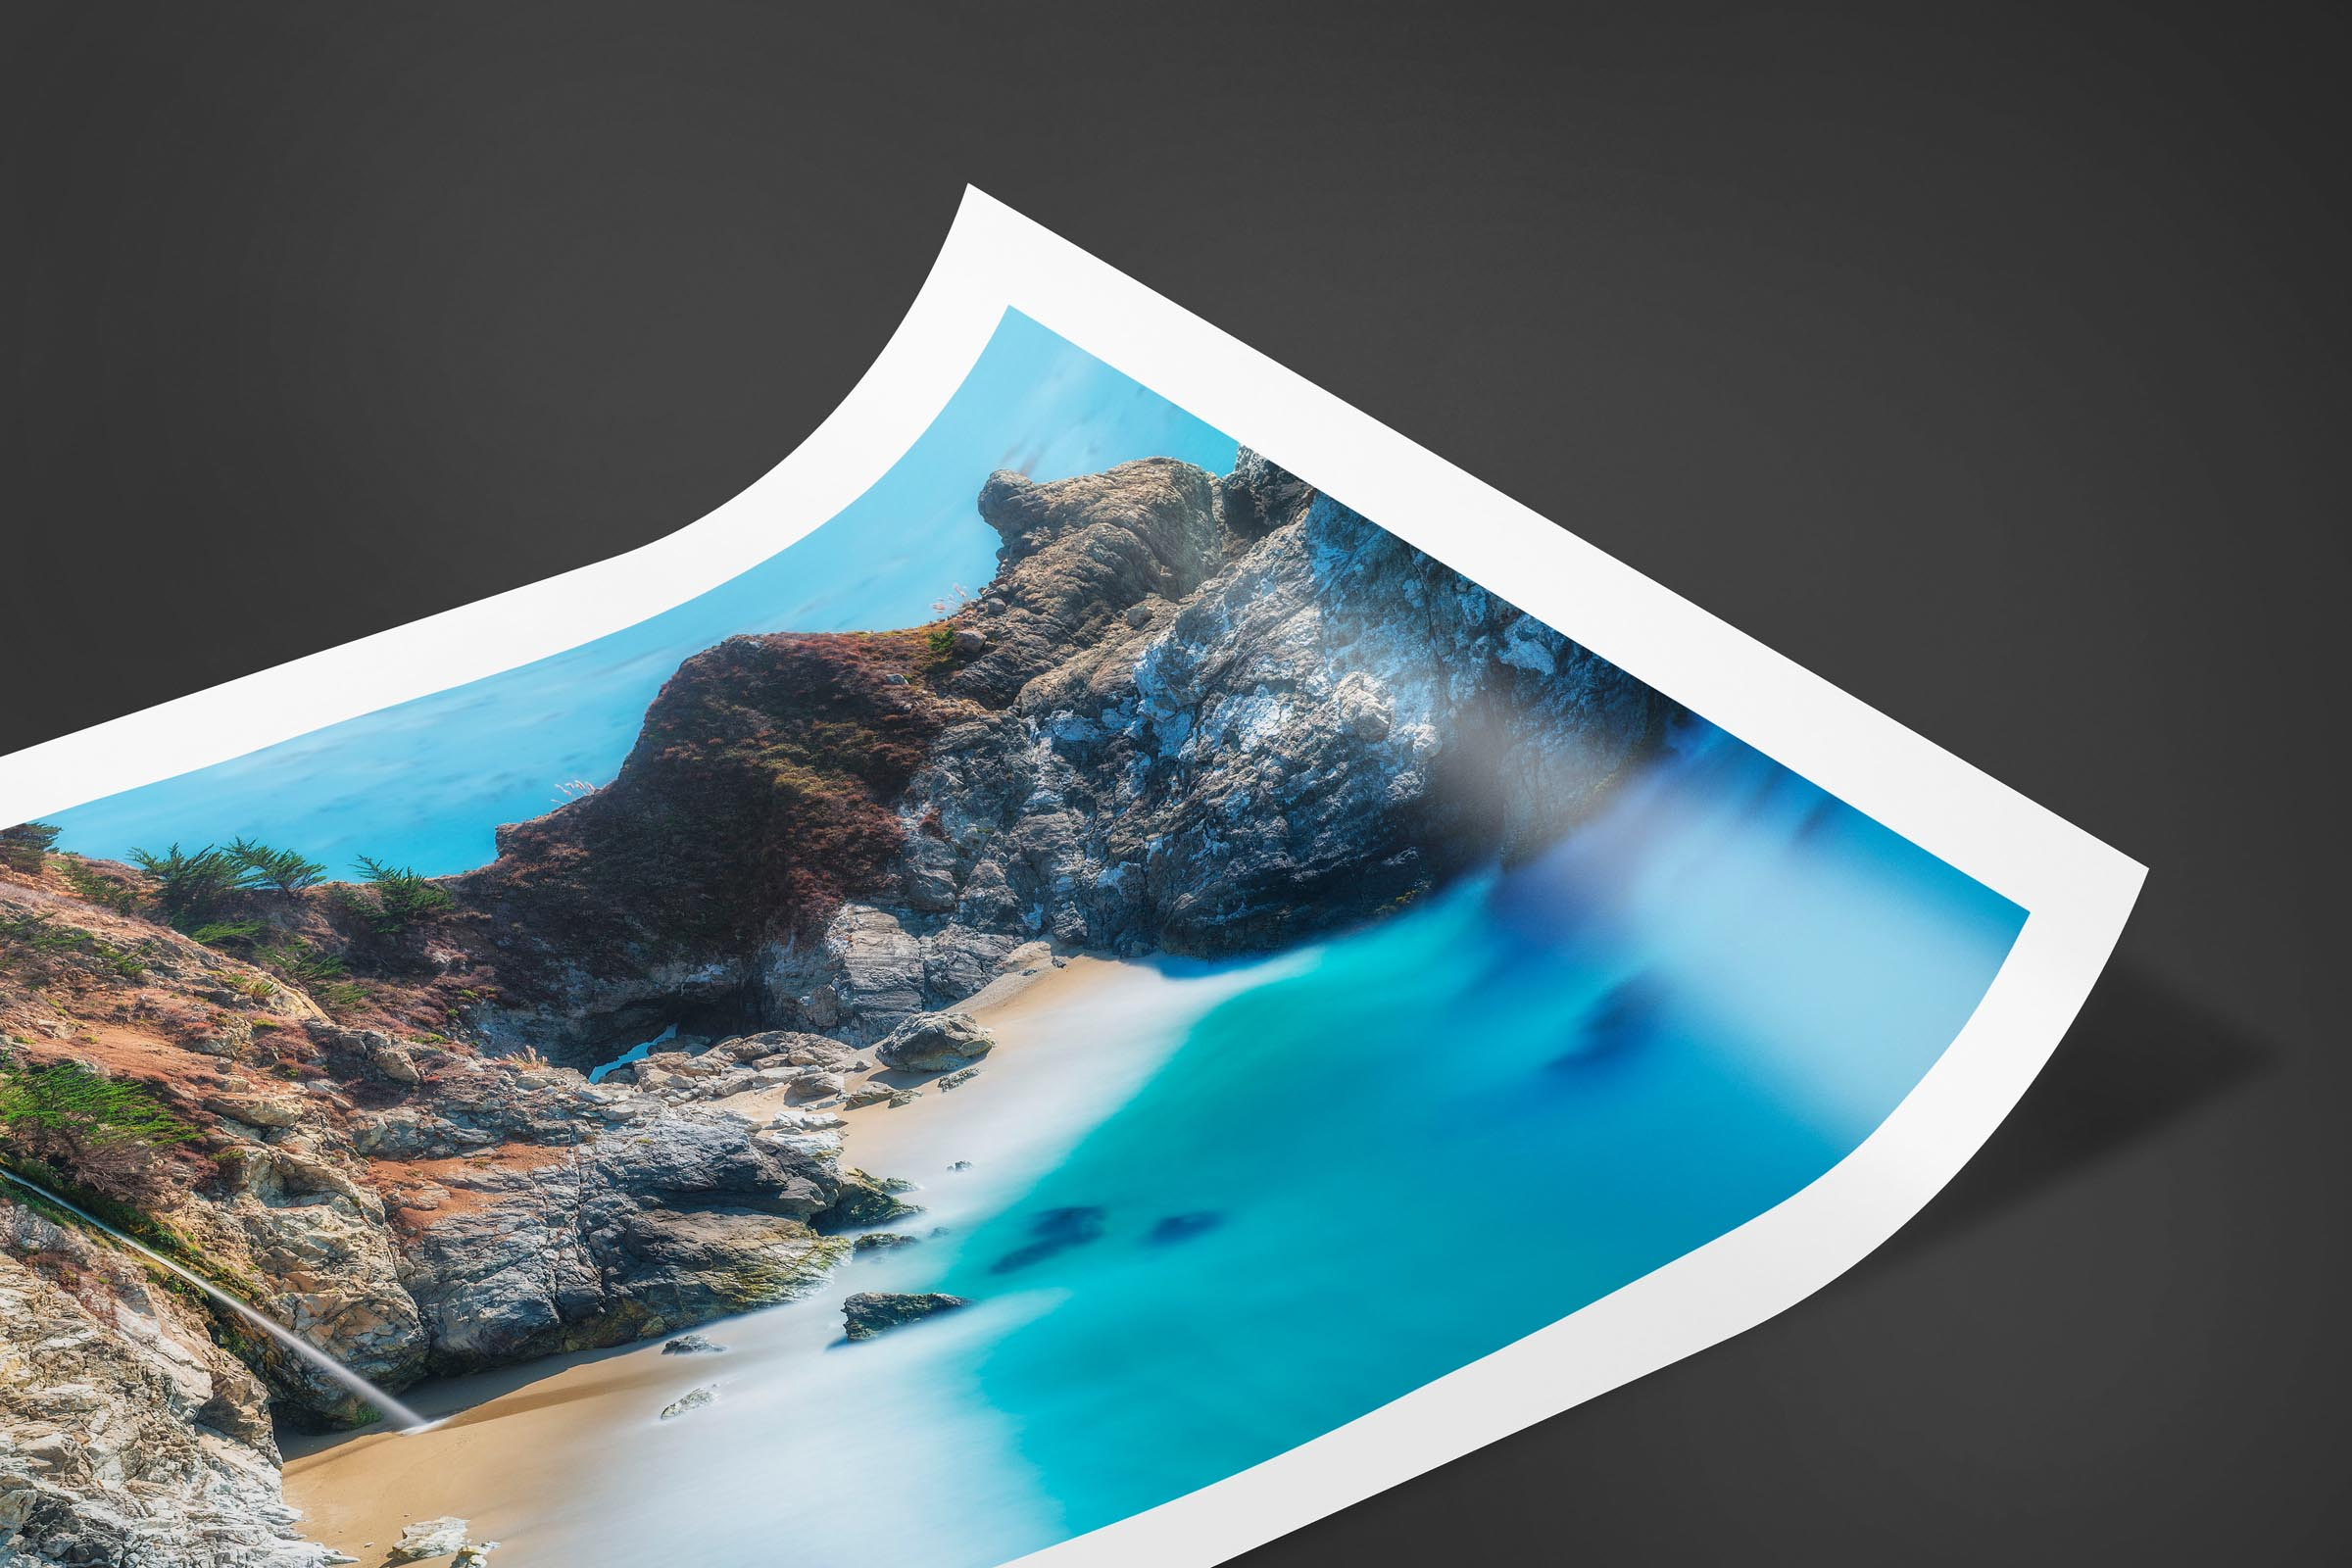 Fine art limited edition print of McWay Falls in Big Sur, California by Brent Goldman Photography